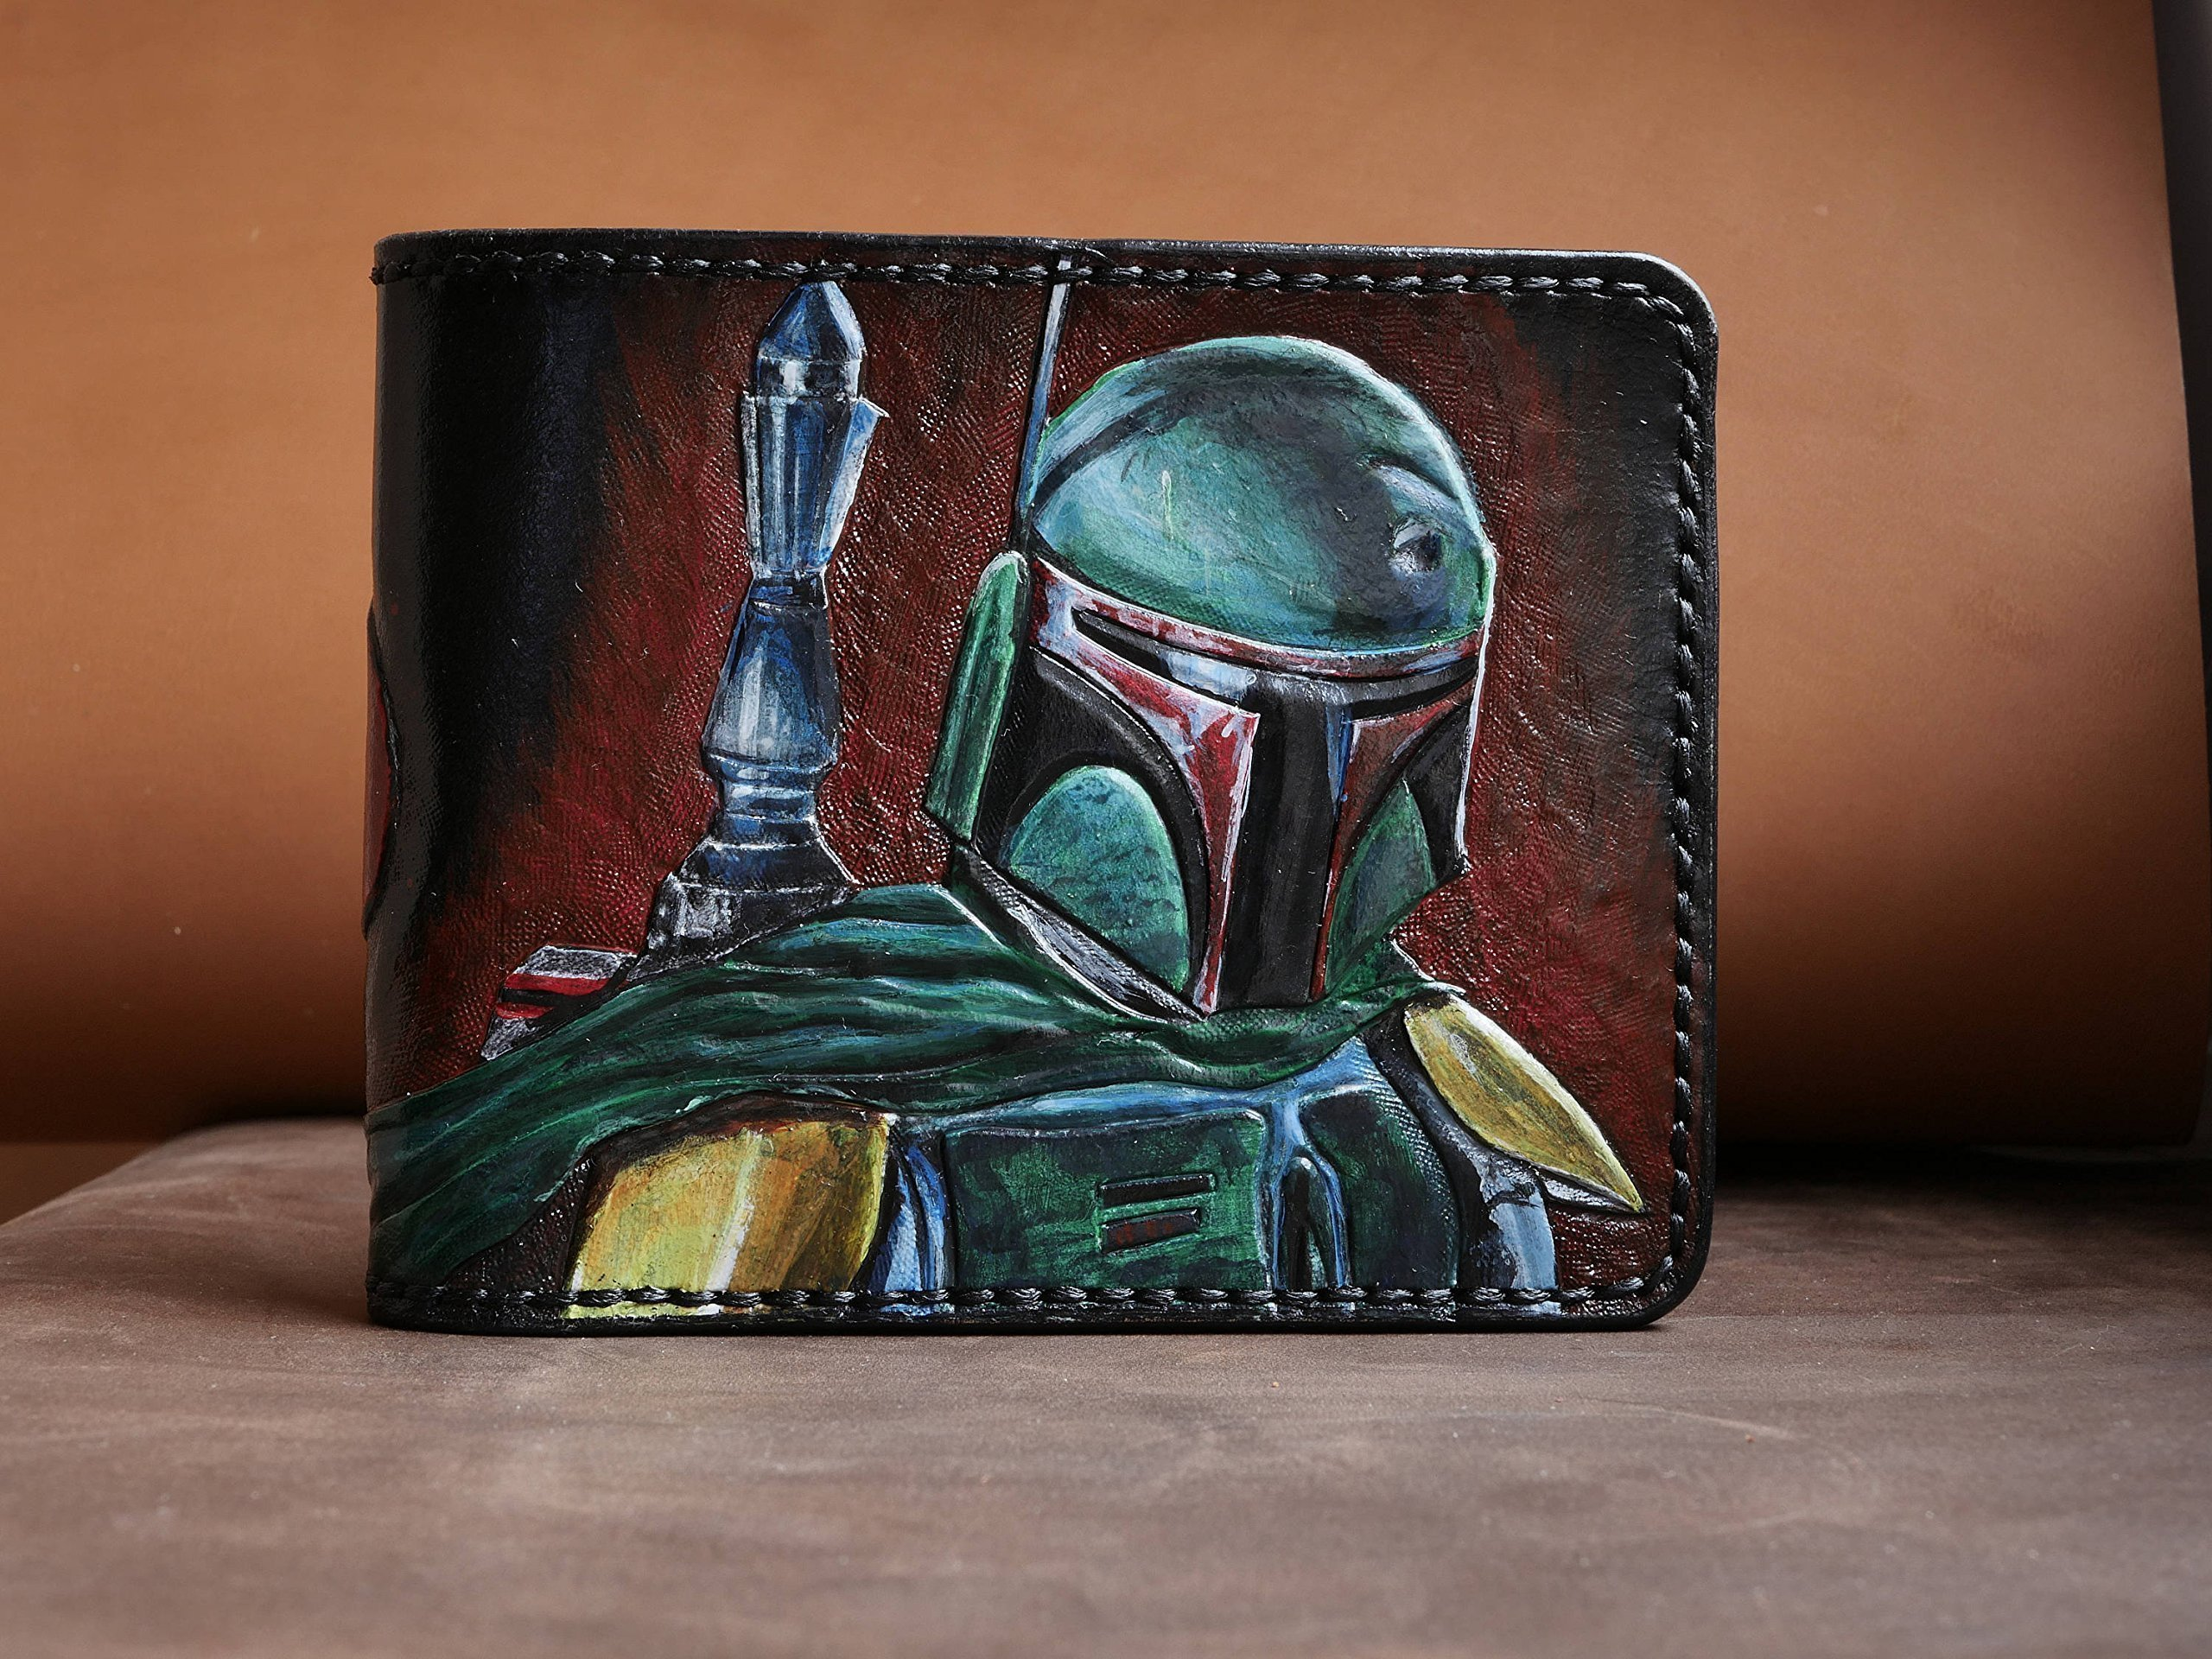 Men's 3D Genuine Leather Wallet, Hand-Carved, Hand-Painted, Leather Carving, Custom wallet, Personalized wallet, Boba Fett's, Star Wars